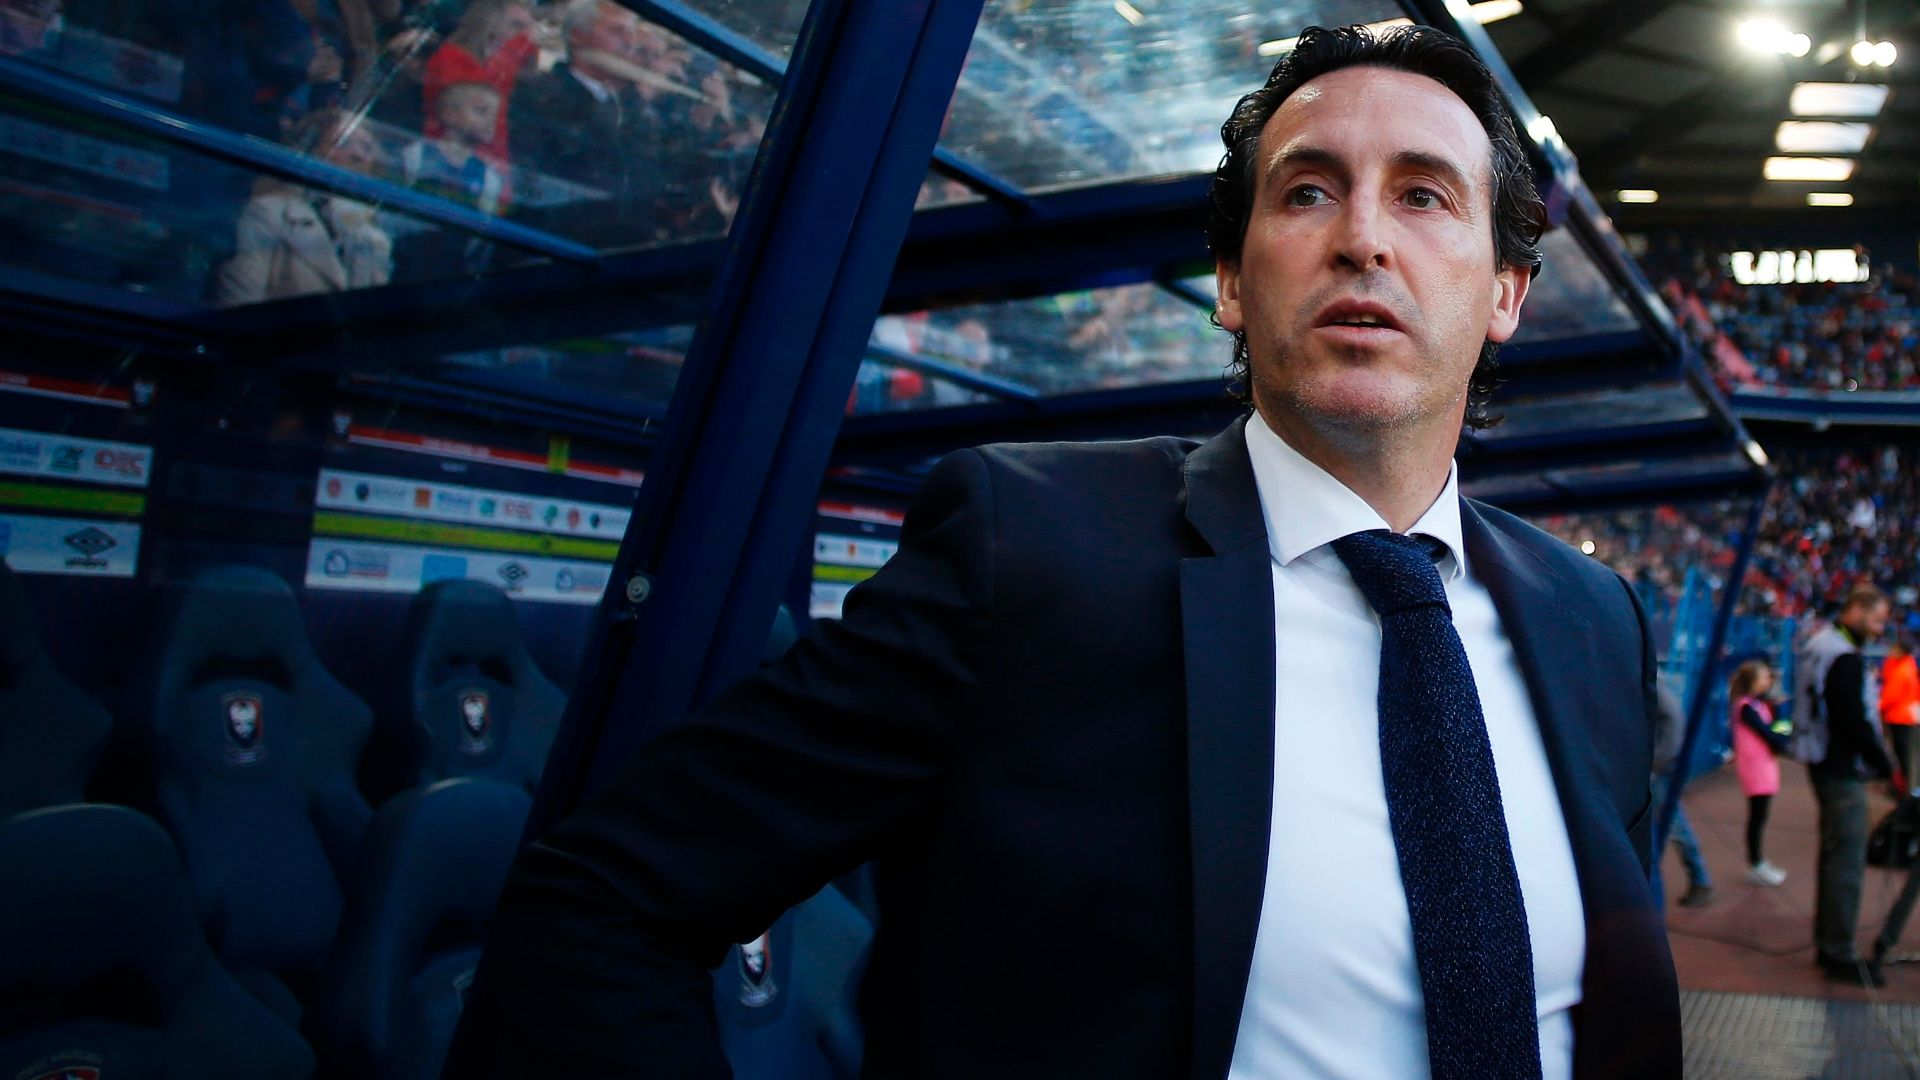 Emery can improve Arsenal overnight